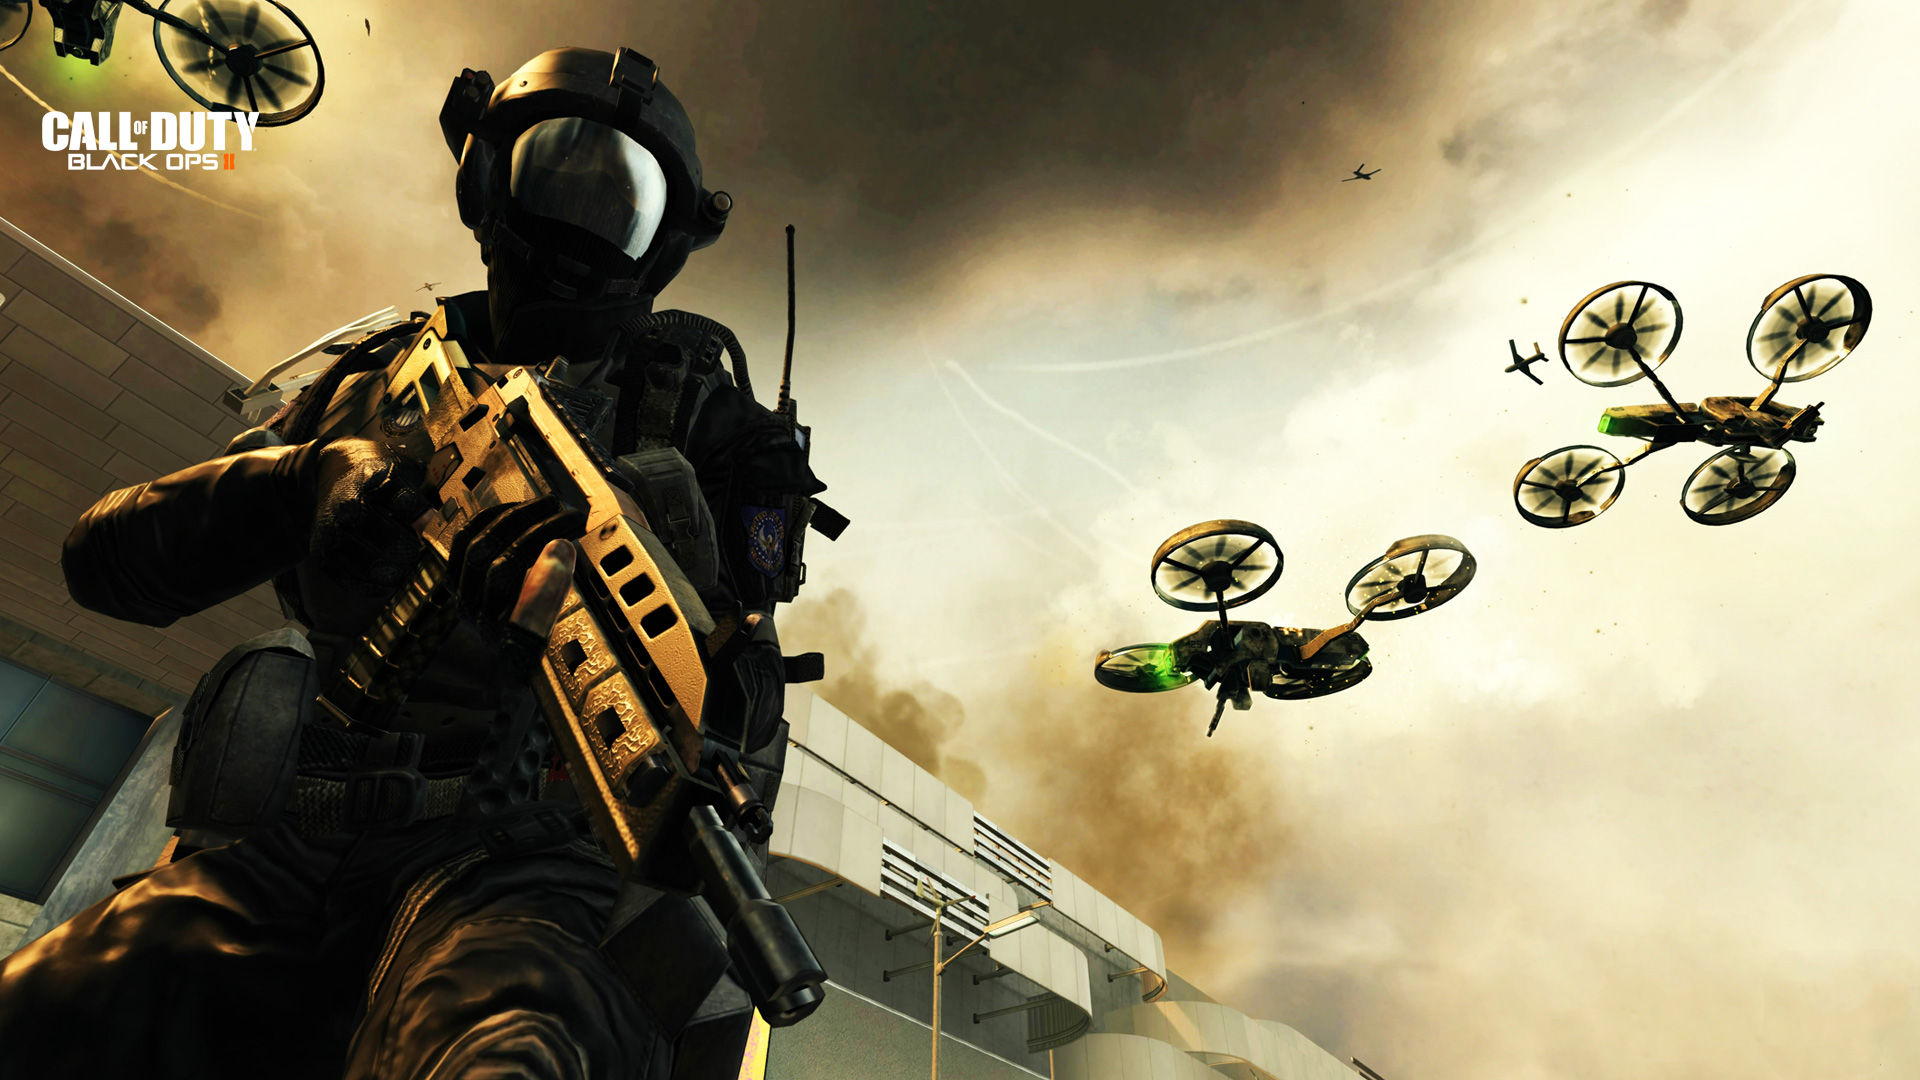 Call Of Duty Black Ops 2 Wallpaper 17